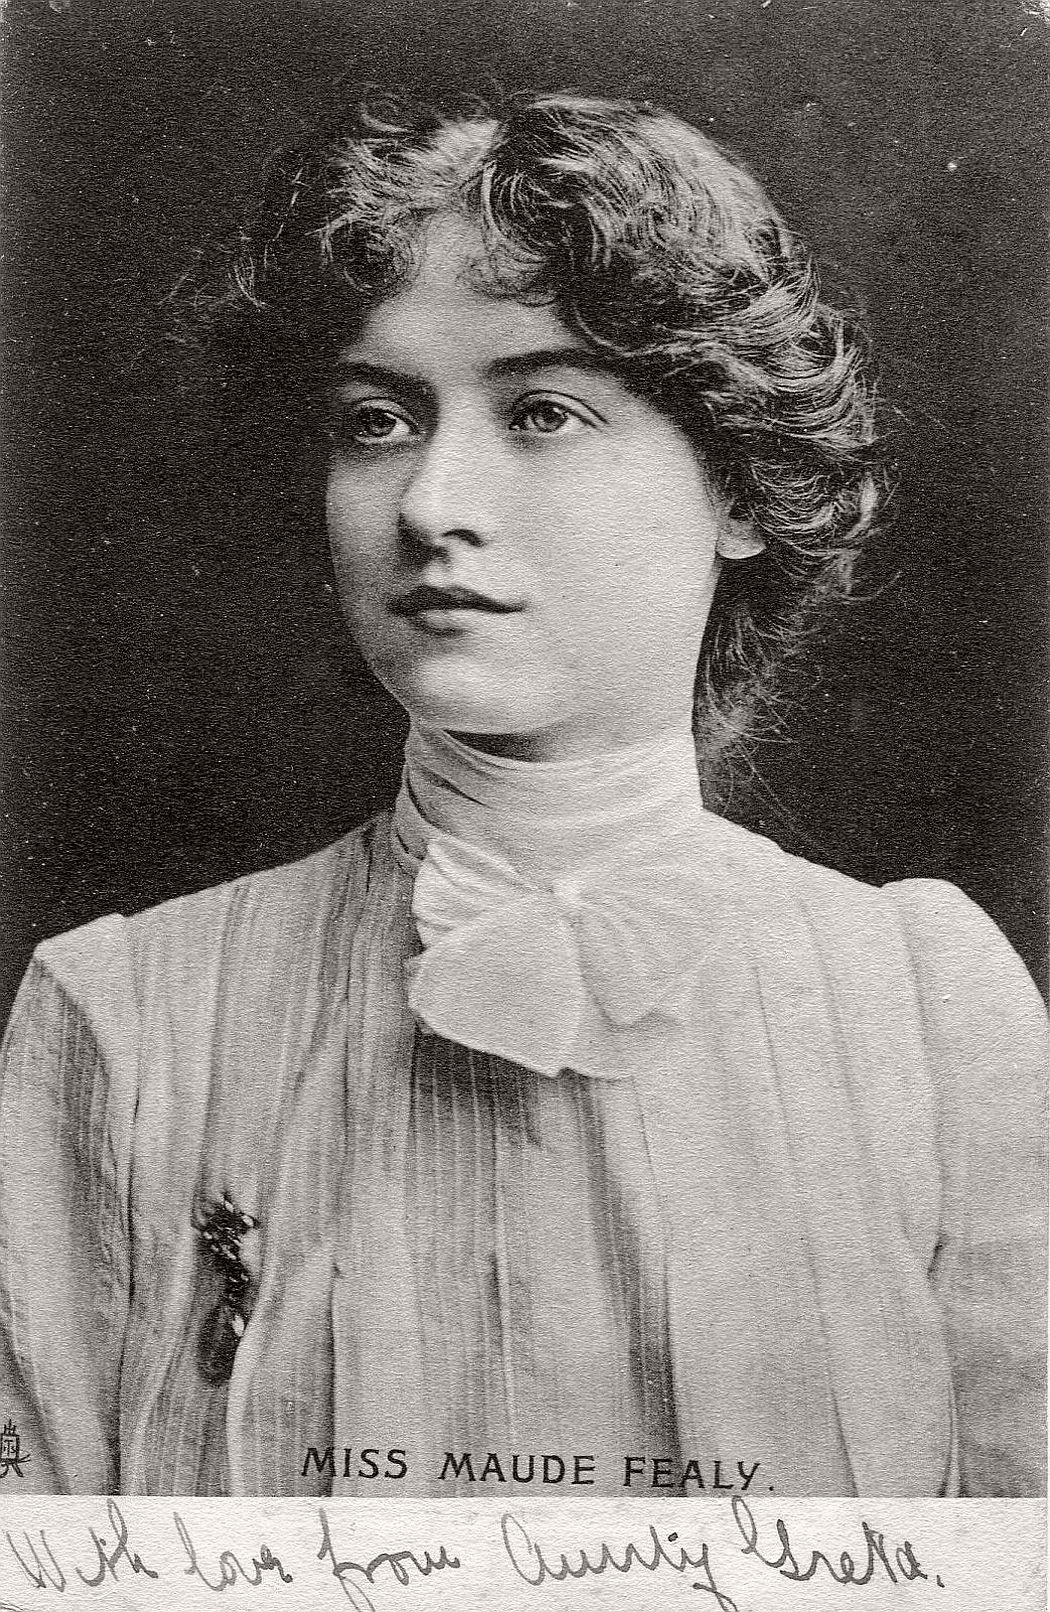 vintage-postcard-of-actress-miss-maude-fealy-1900s-early-xx-century-25